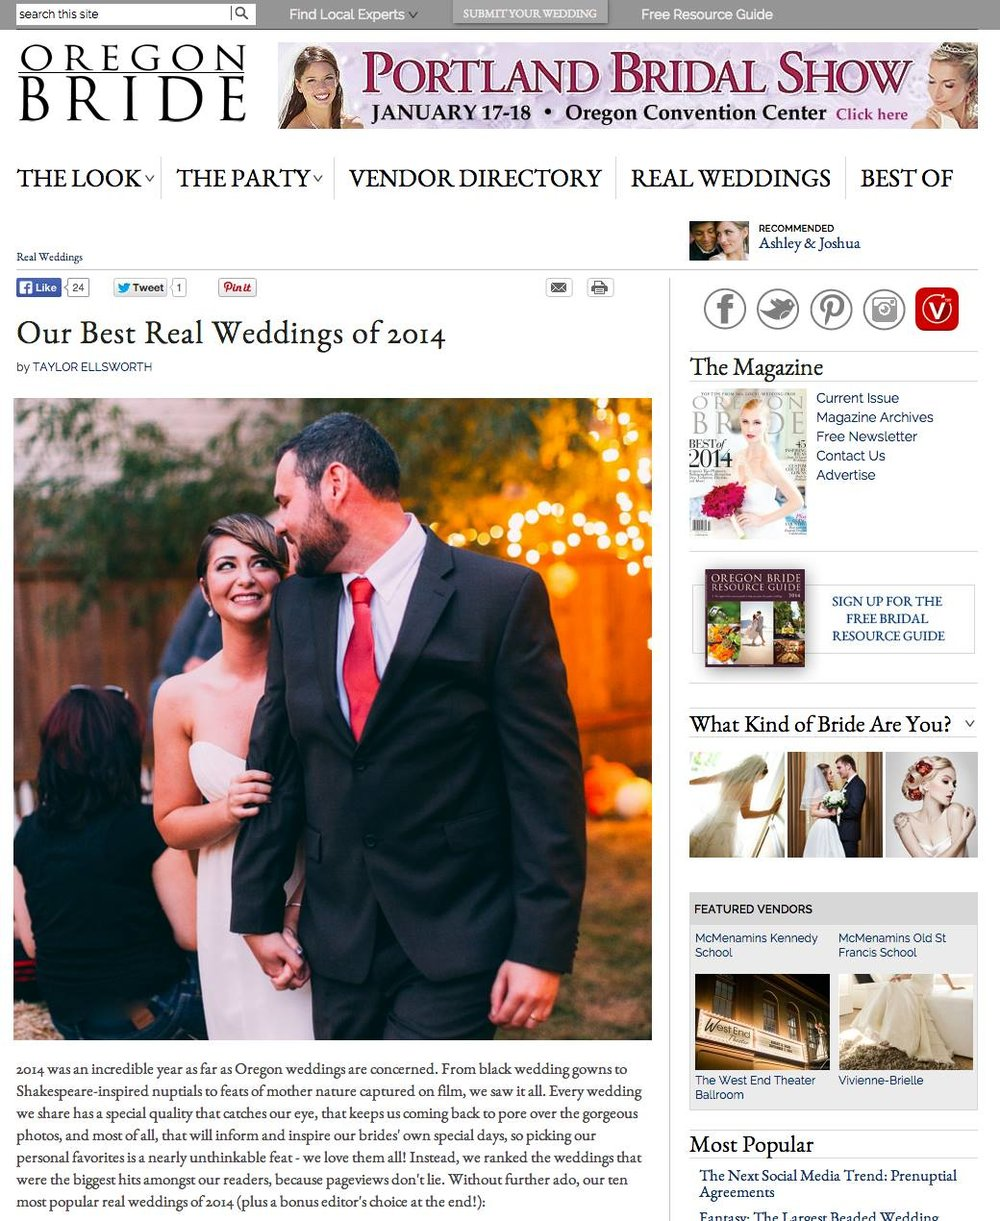 Leah Flores 'Best Real Wedding' for Oregon Bride